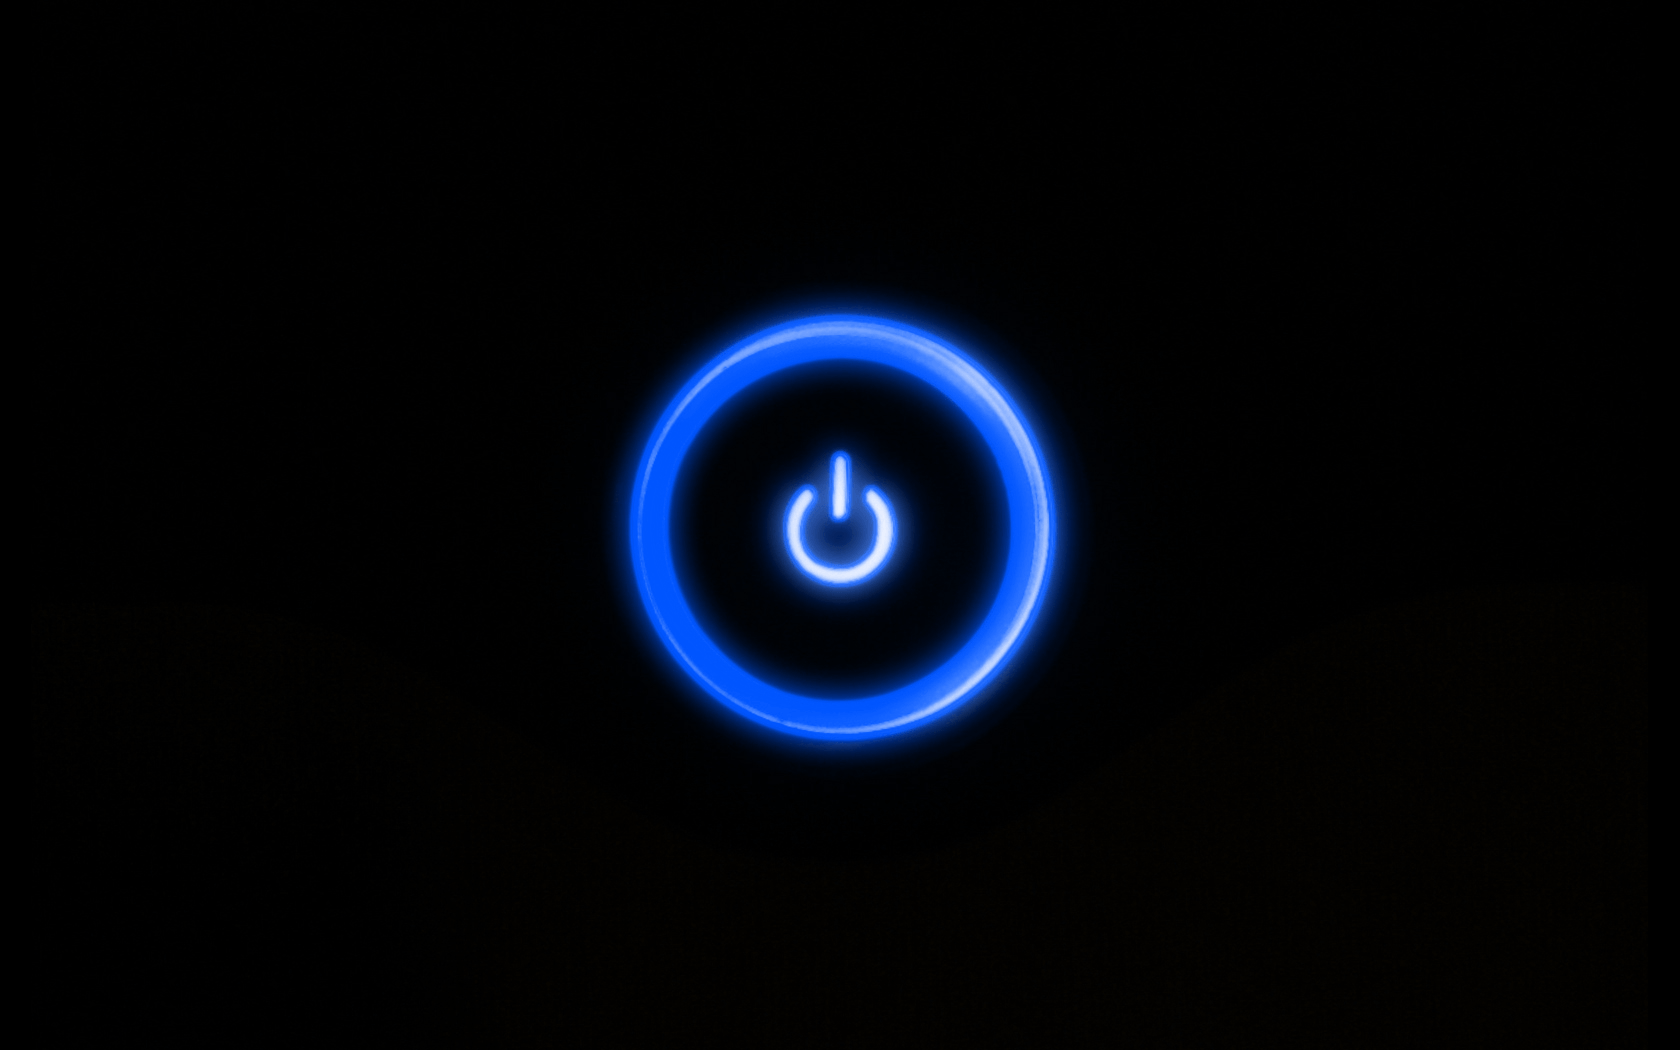 Wallpapers Neon Blue Wallpaper Cave